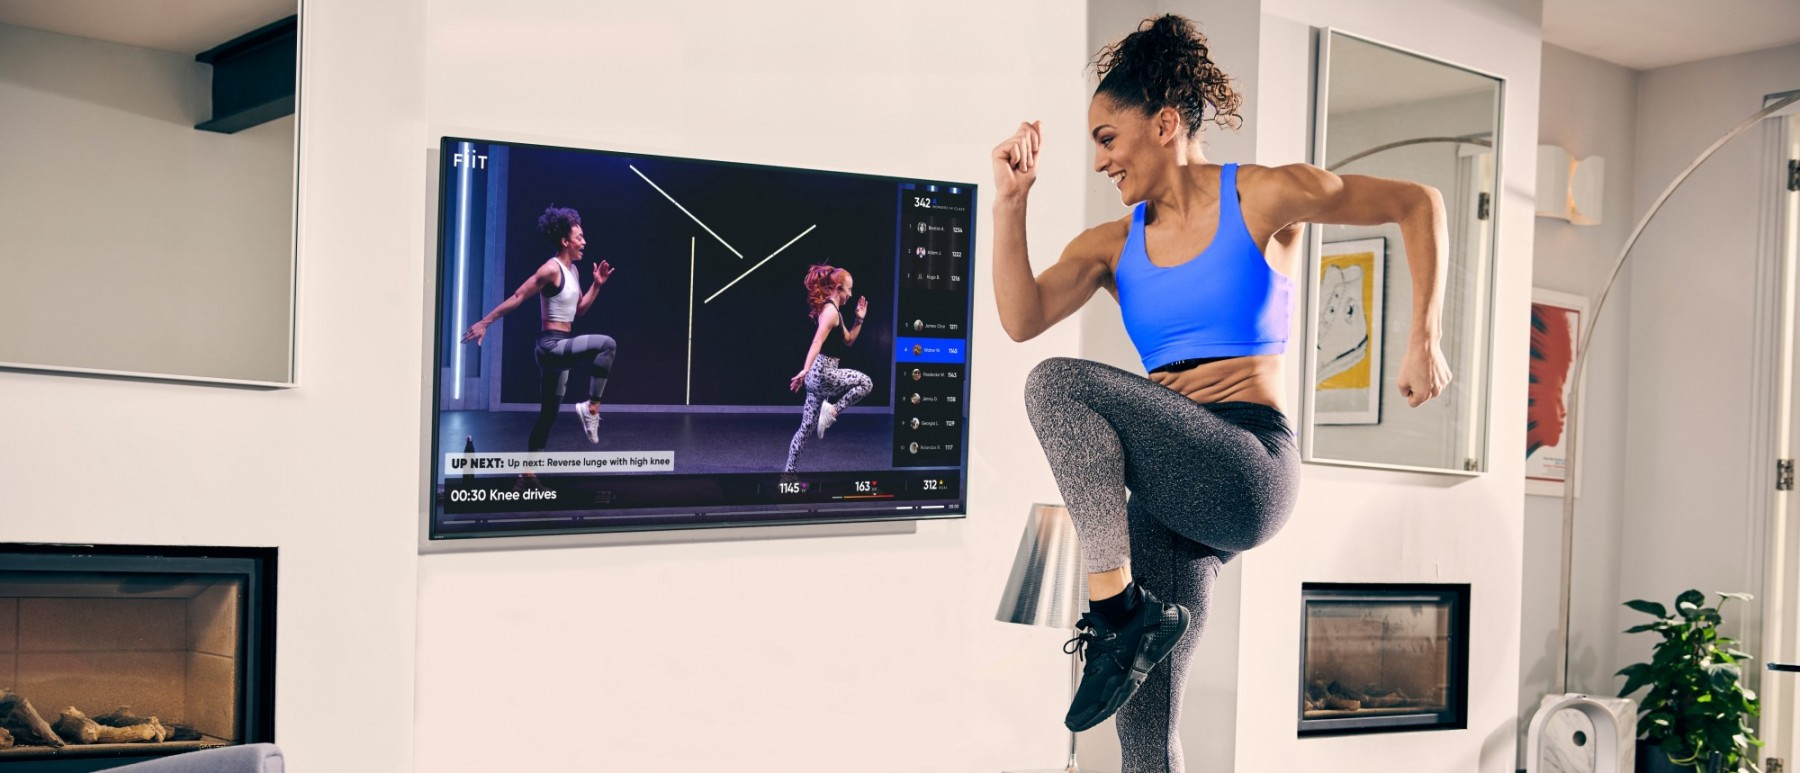 A woman keeping fit at home, watching a fitness video on the TV. She is mid jump, bringing on knee up to her chest